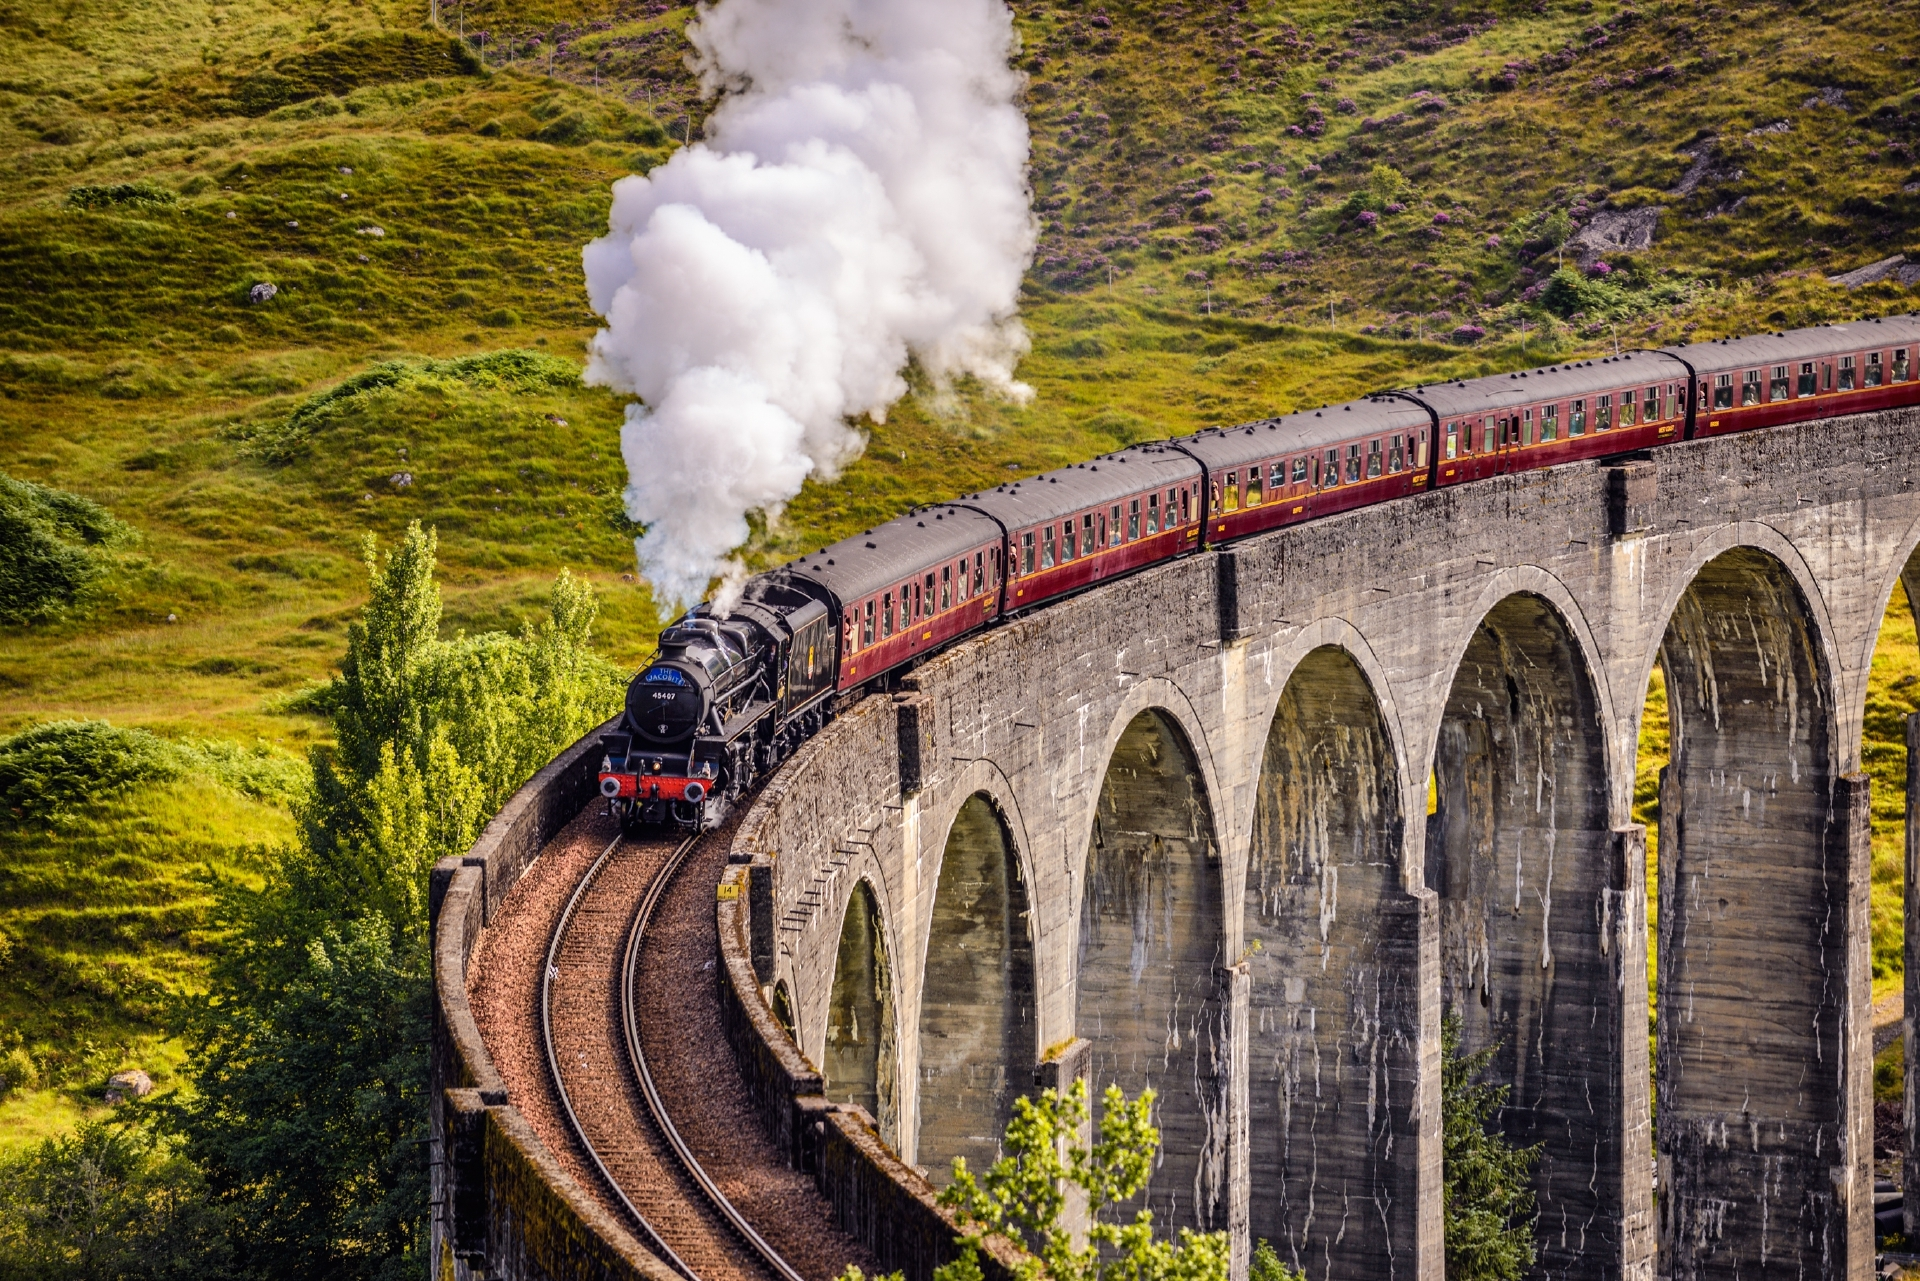 Glenfinnan Railway Viaduct in Scotland with the Jacobite steam train passing over on its way to Mallaig.